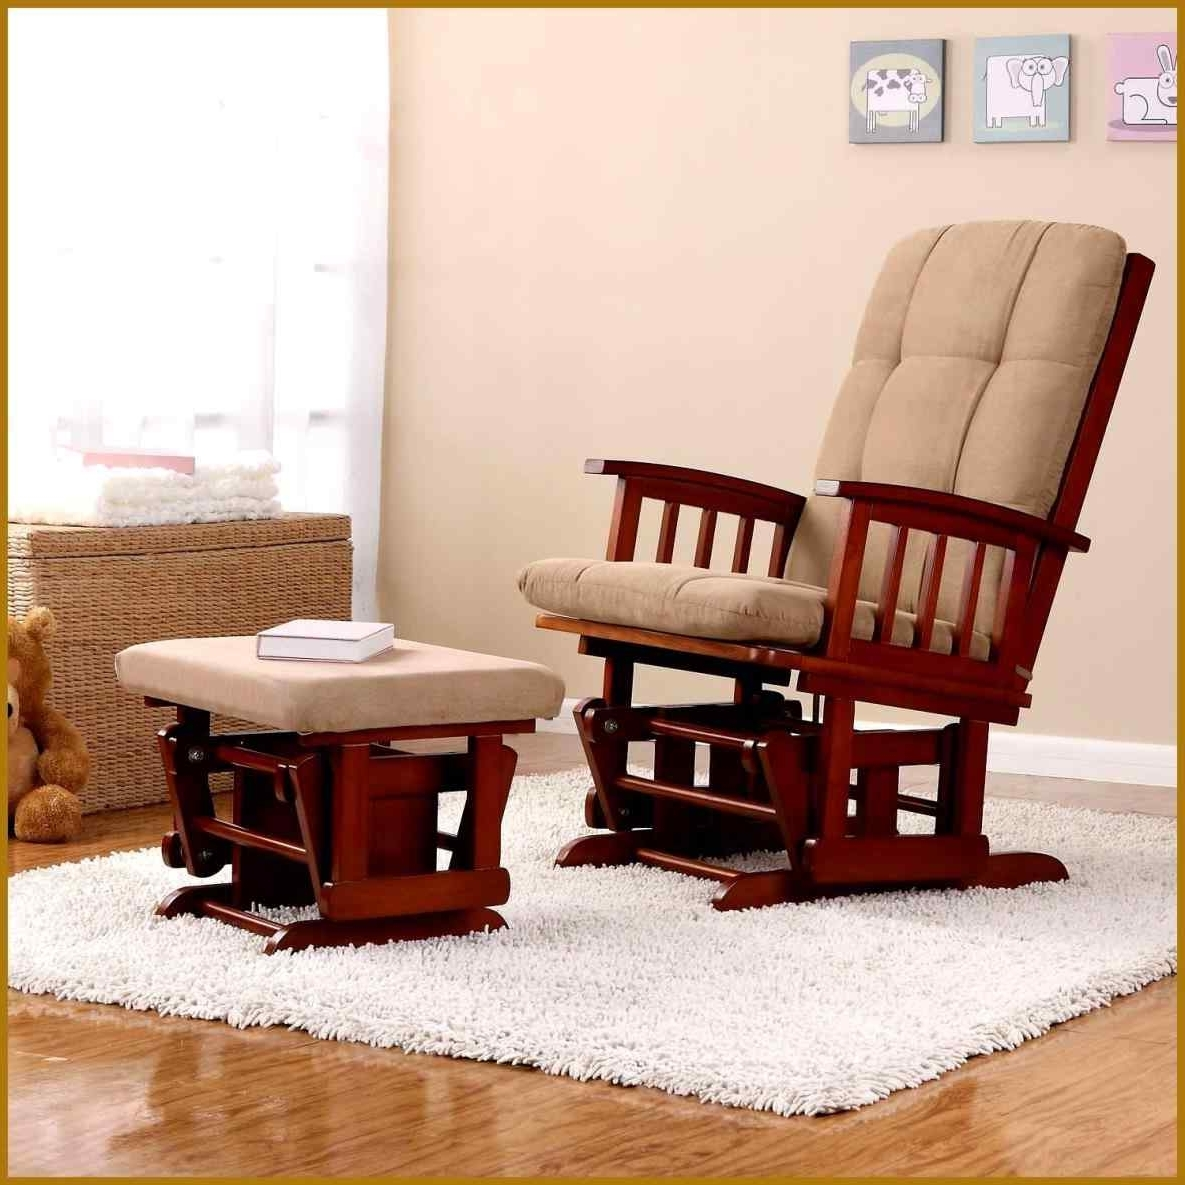 Best And Newest Wicker Rocking Chairs And Ottoman Inside The Images Collection Of Cushion Coral Coast Mocha Resin Wicker (View 2 of 20)